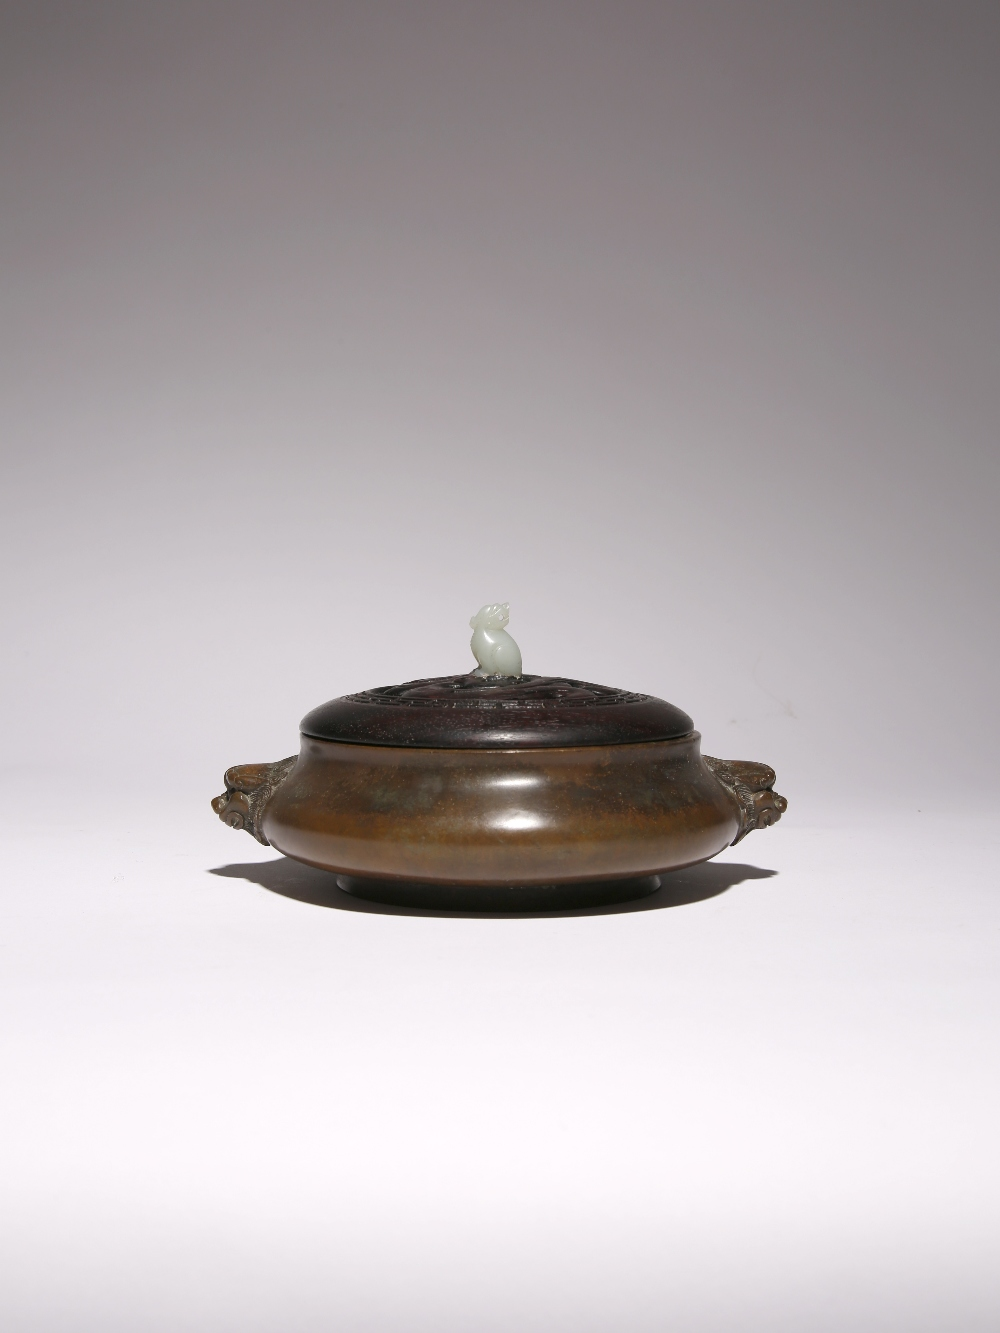 A CHINESE BRONZE INCENSE BURNER PROBABLY LATE QING DYNASTY The bombé-shaped body cast with two